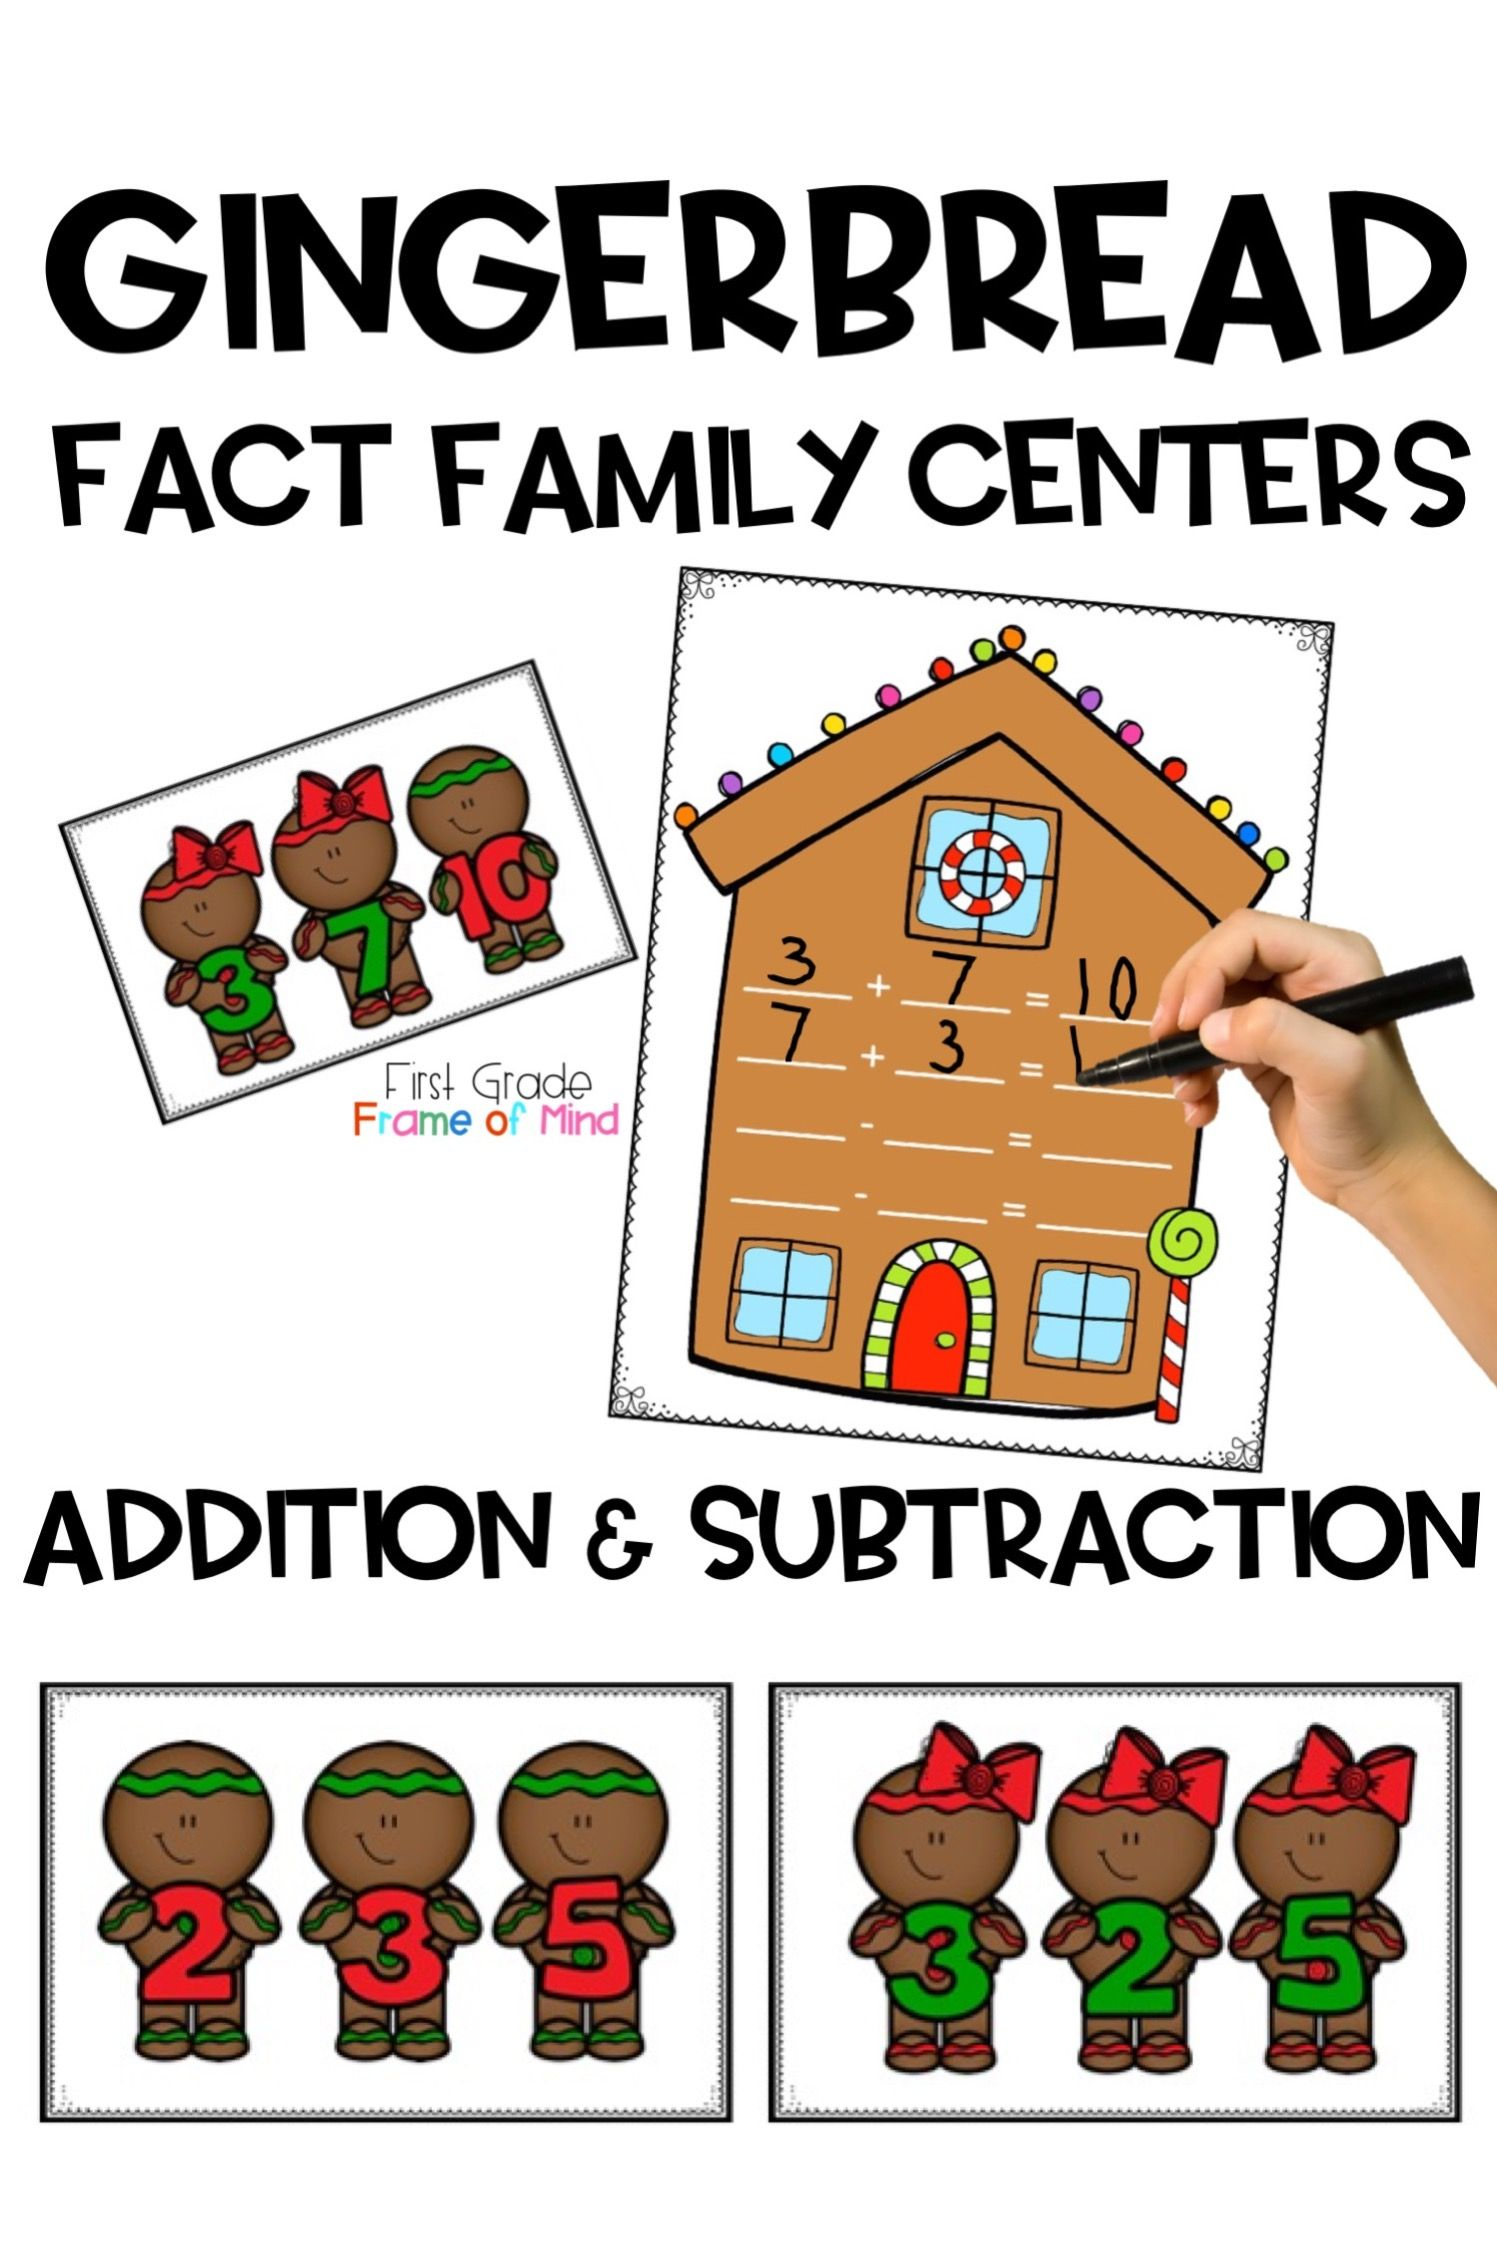 Fact Family Gingerbread Math Center